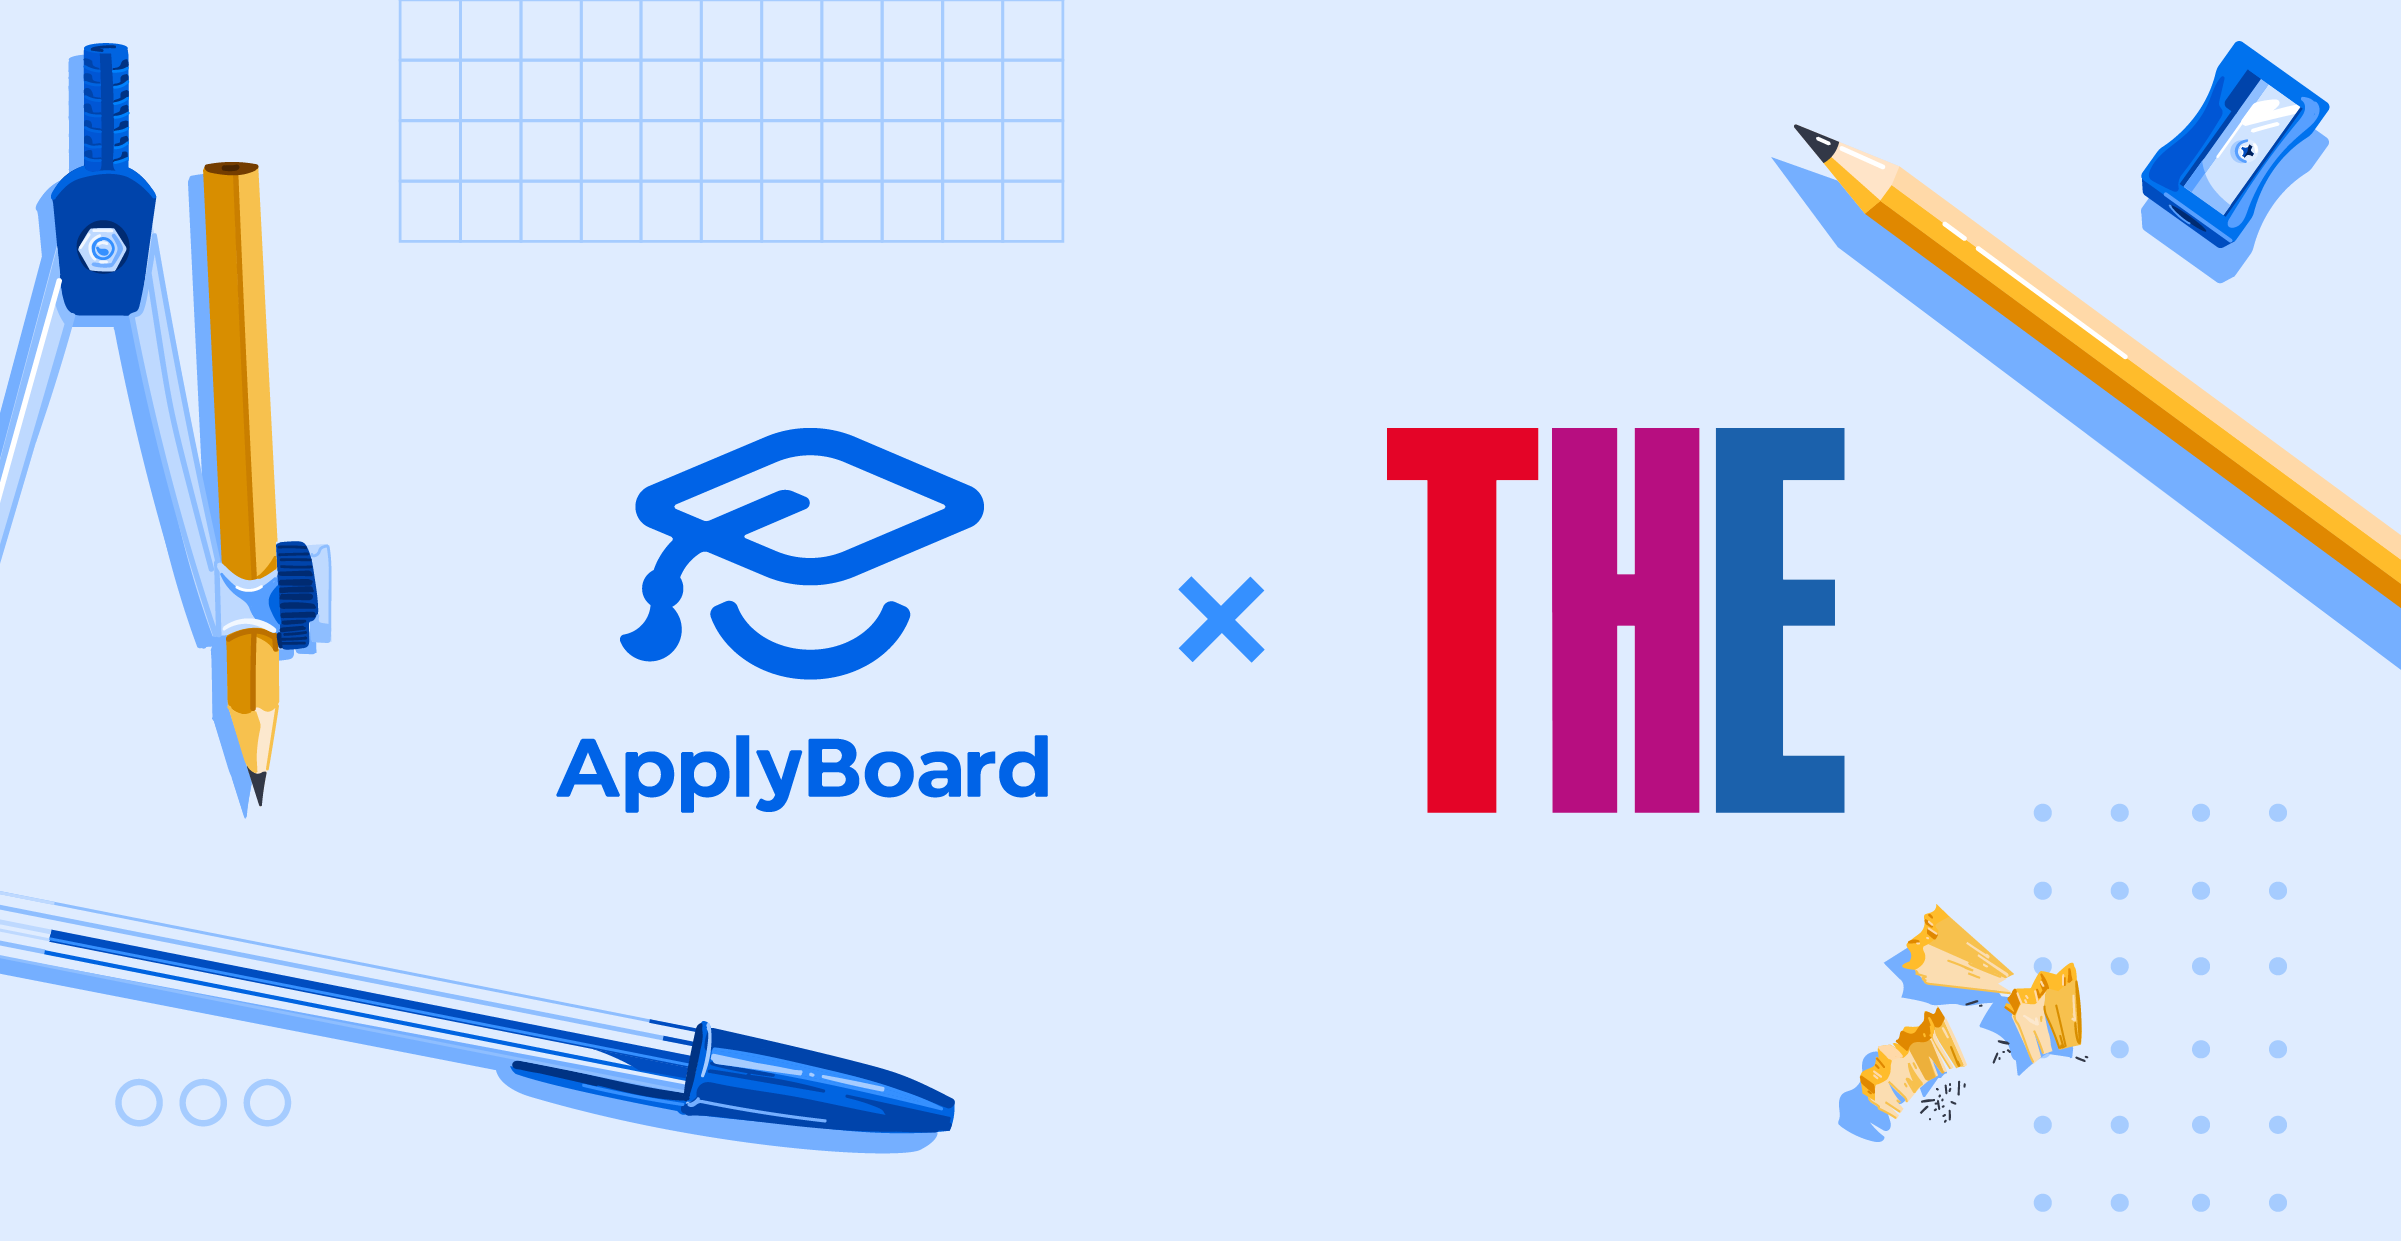 ApplyBoard and Times Higher Education logos with school supplies